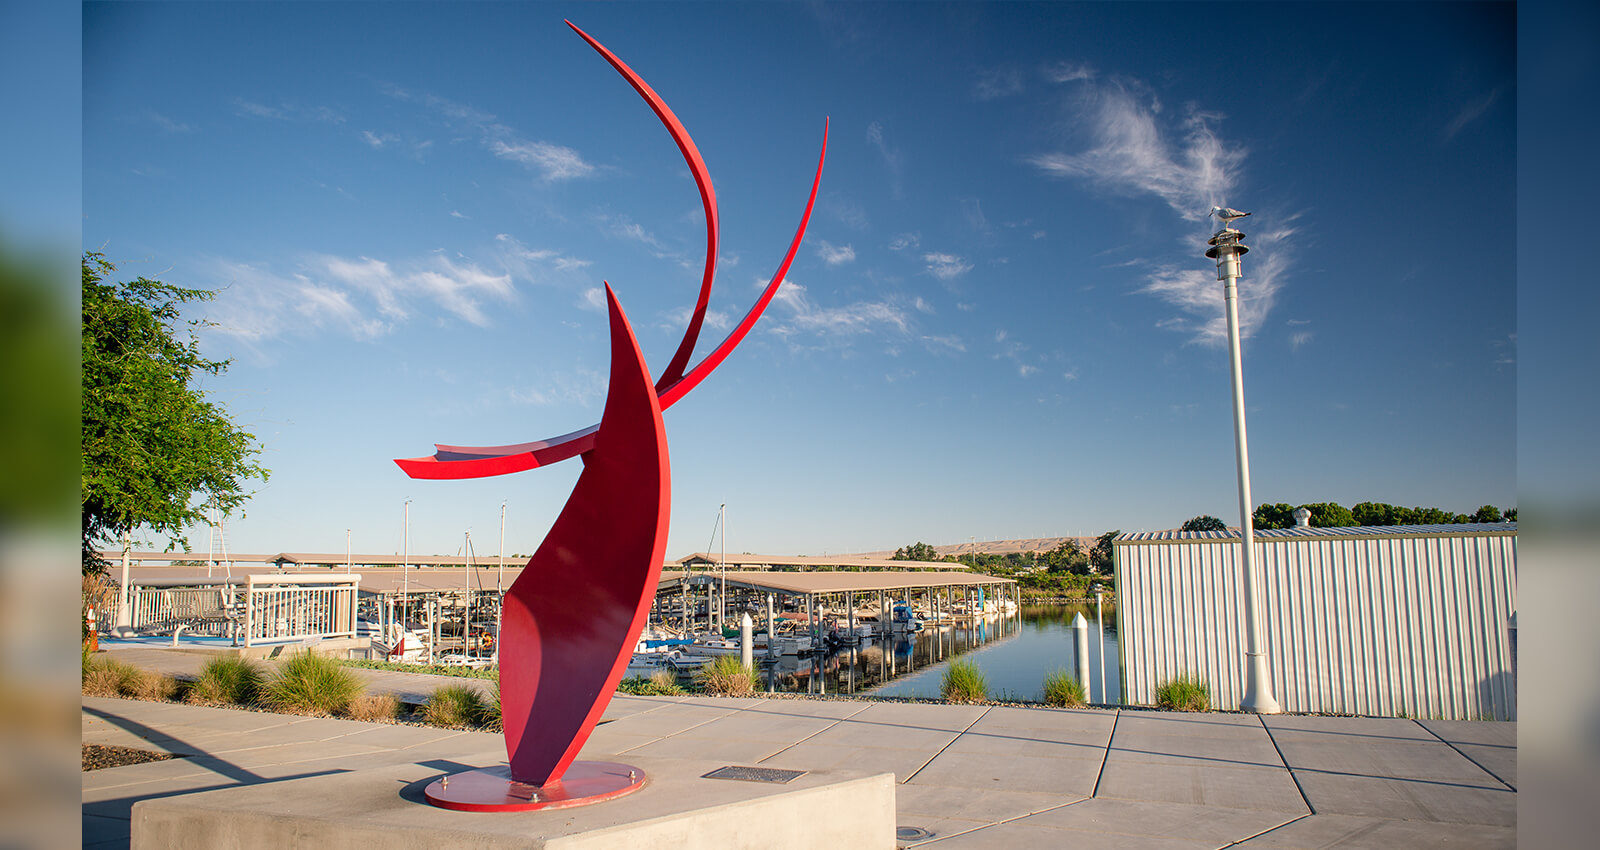 Catch the Wind artwork overlooking the Marina.